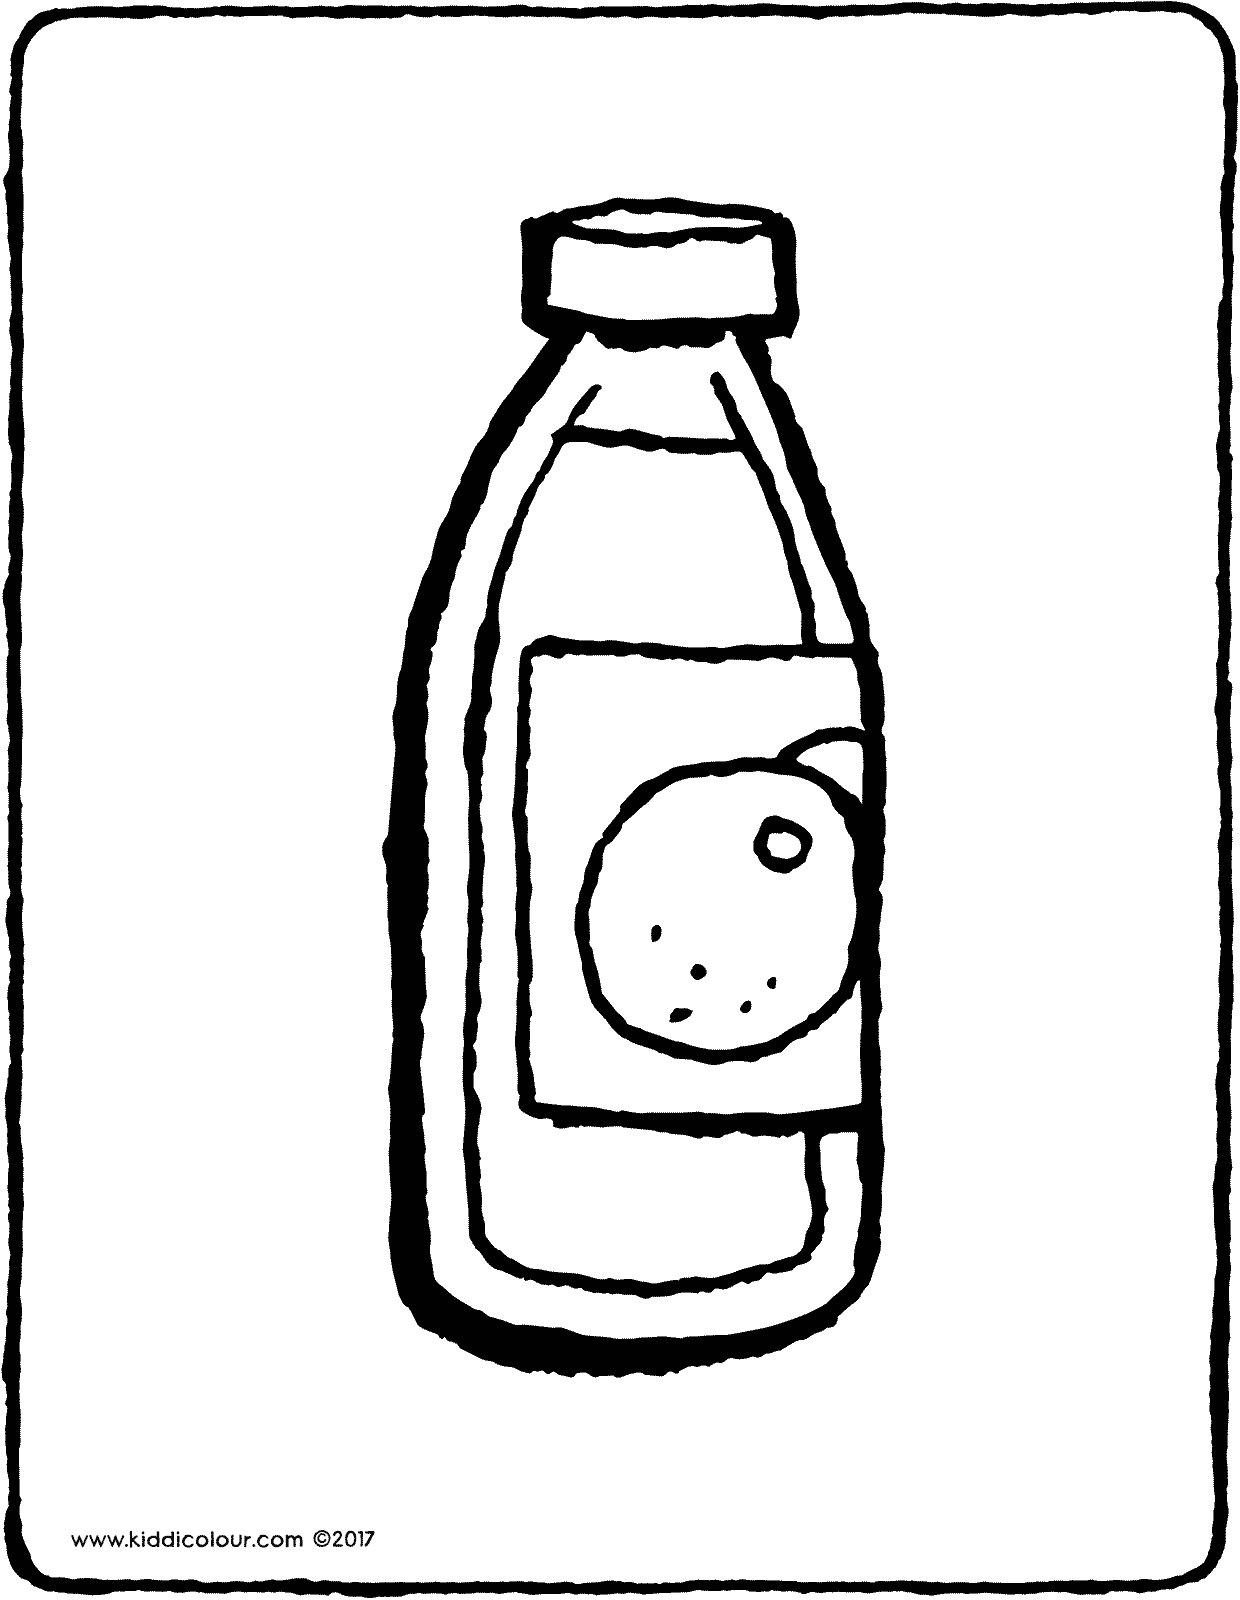 bottle of orange juice colouring page drawing picture 01V